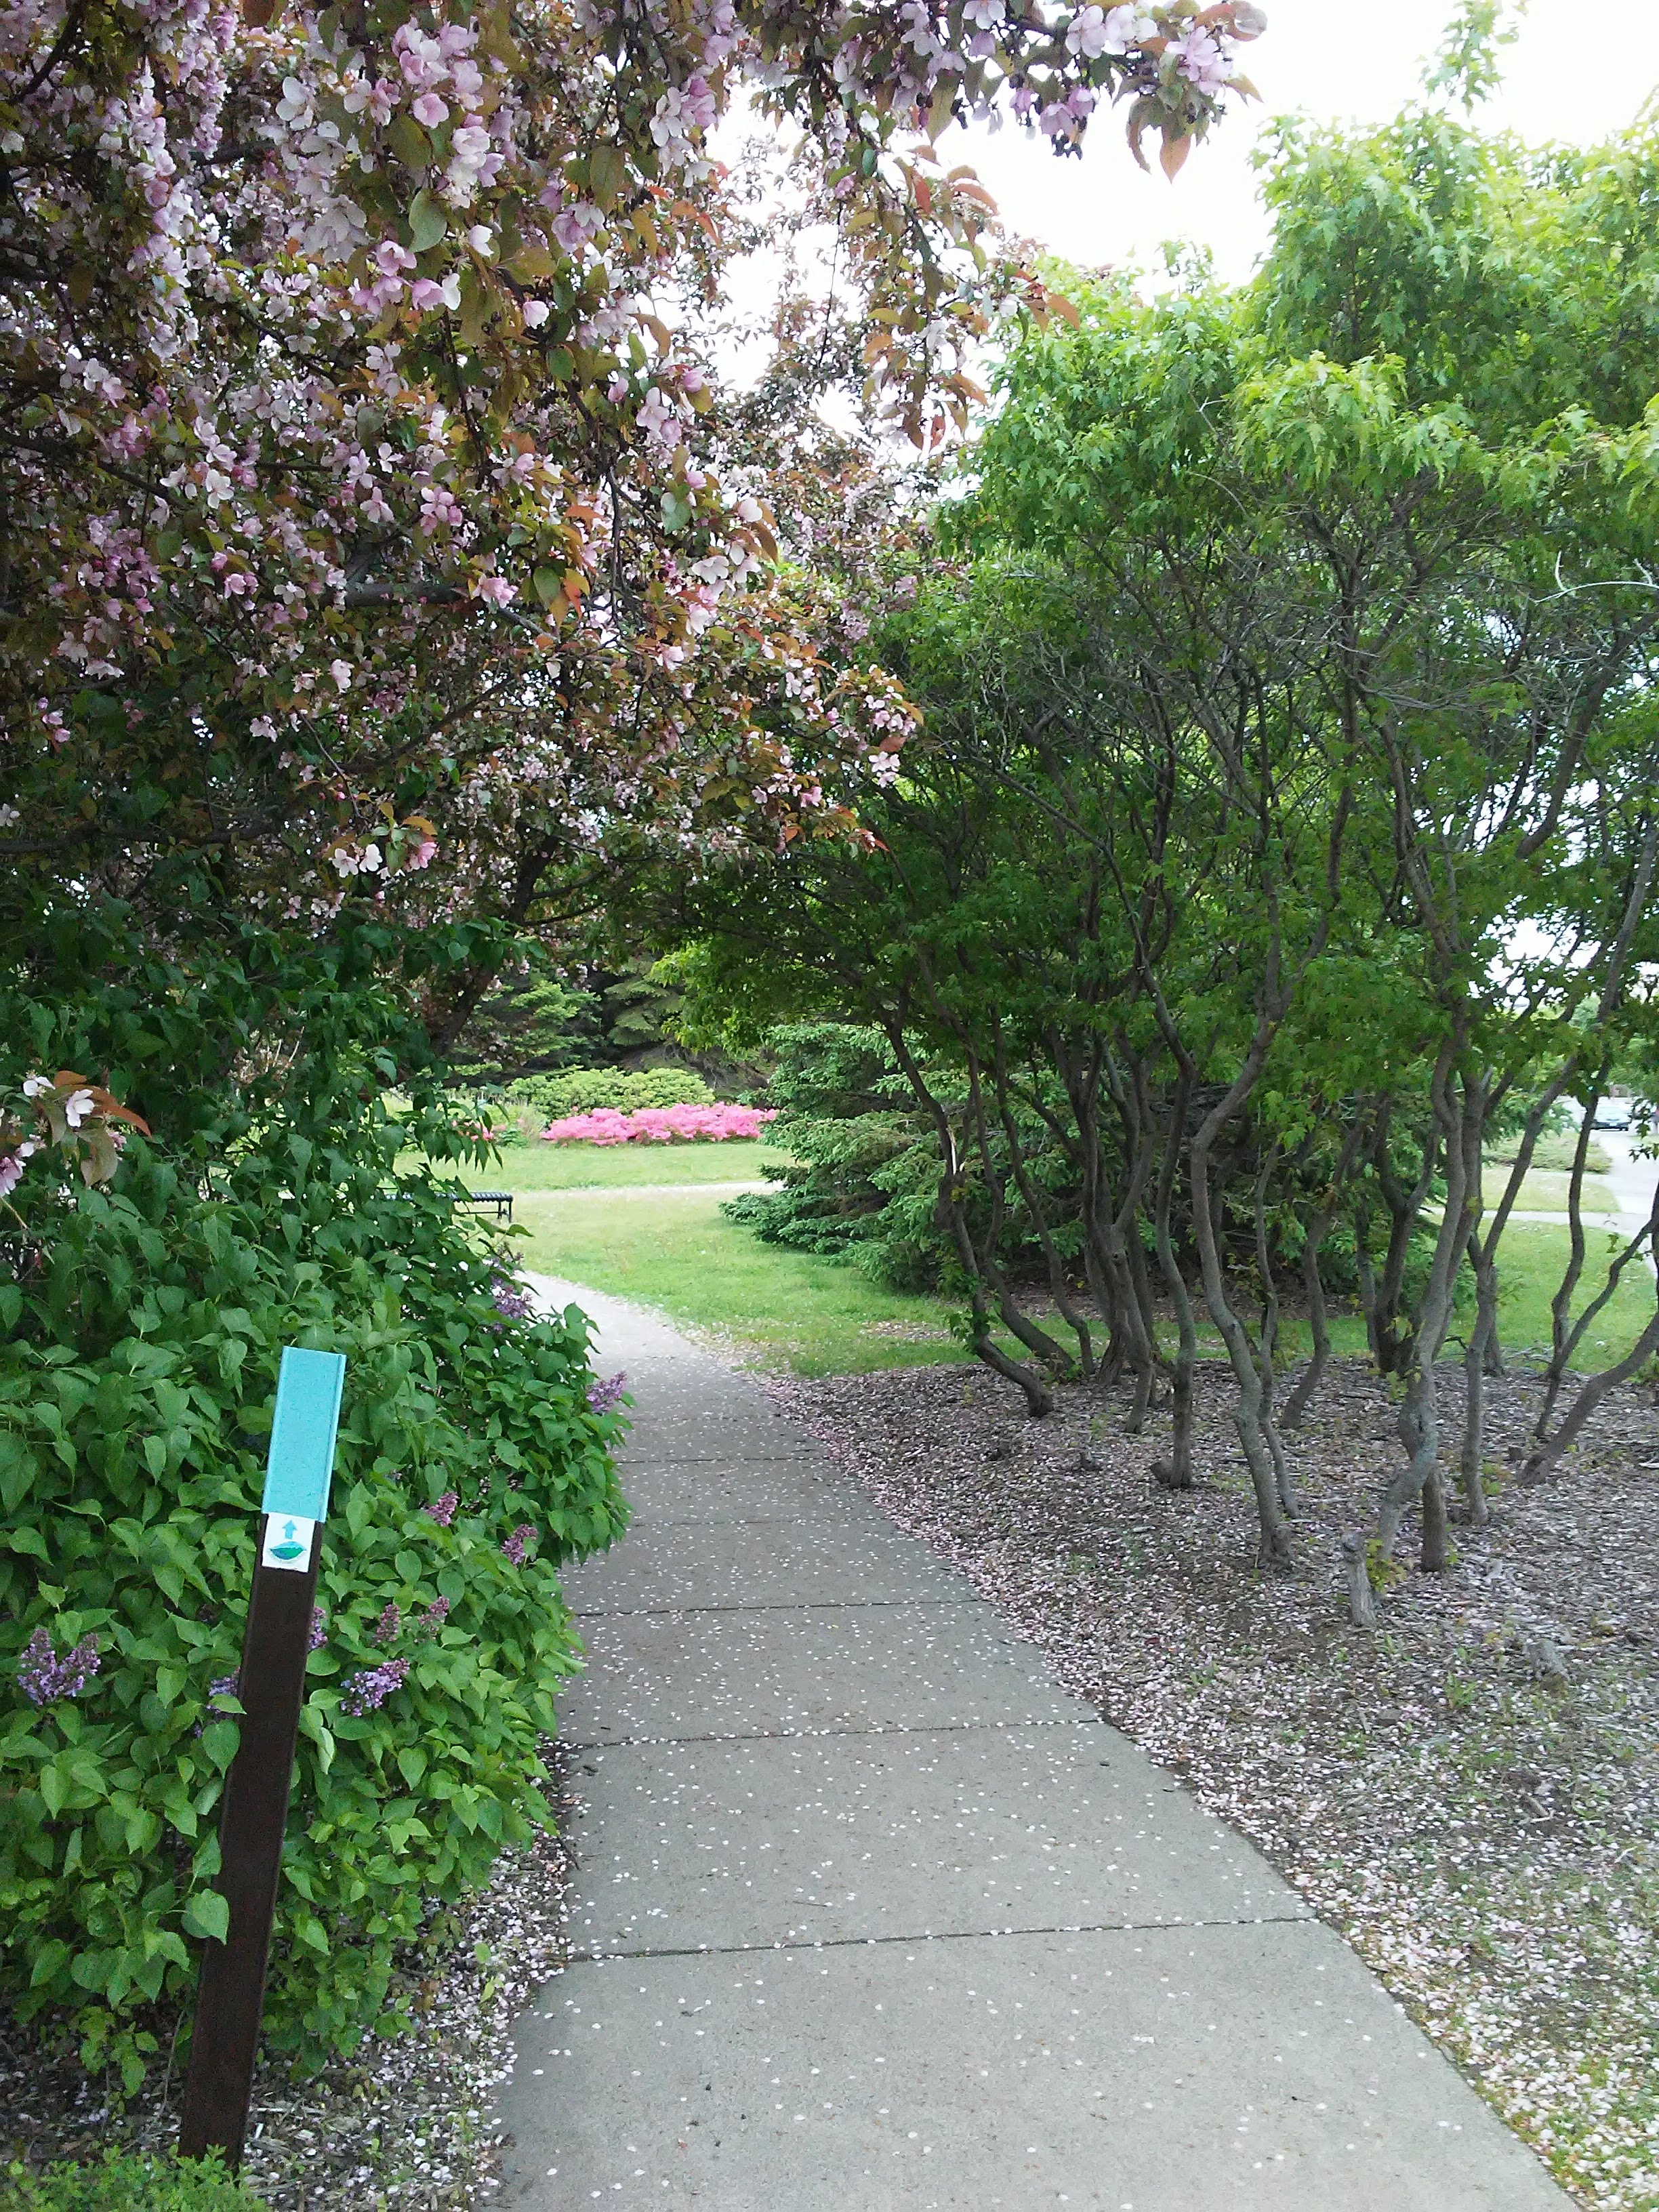 Superior Hiking Trail sign and a sidewalk leading into the Rose Garden in Duluth, Minnesota